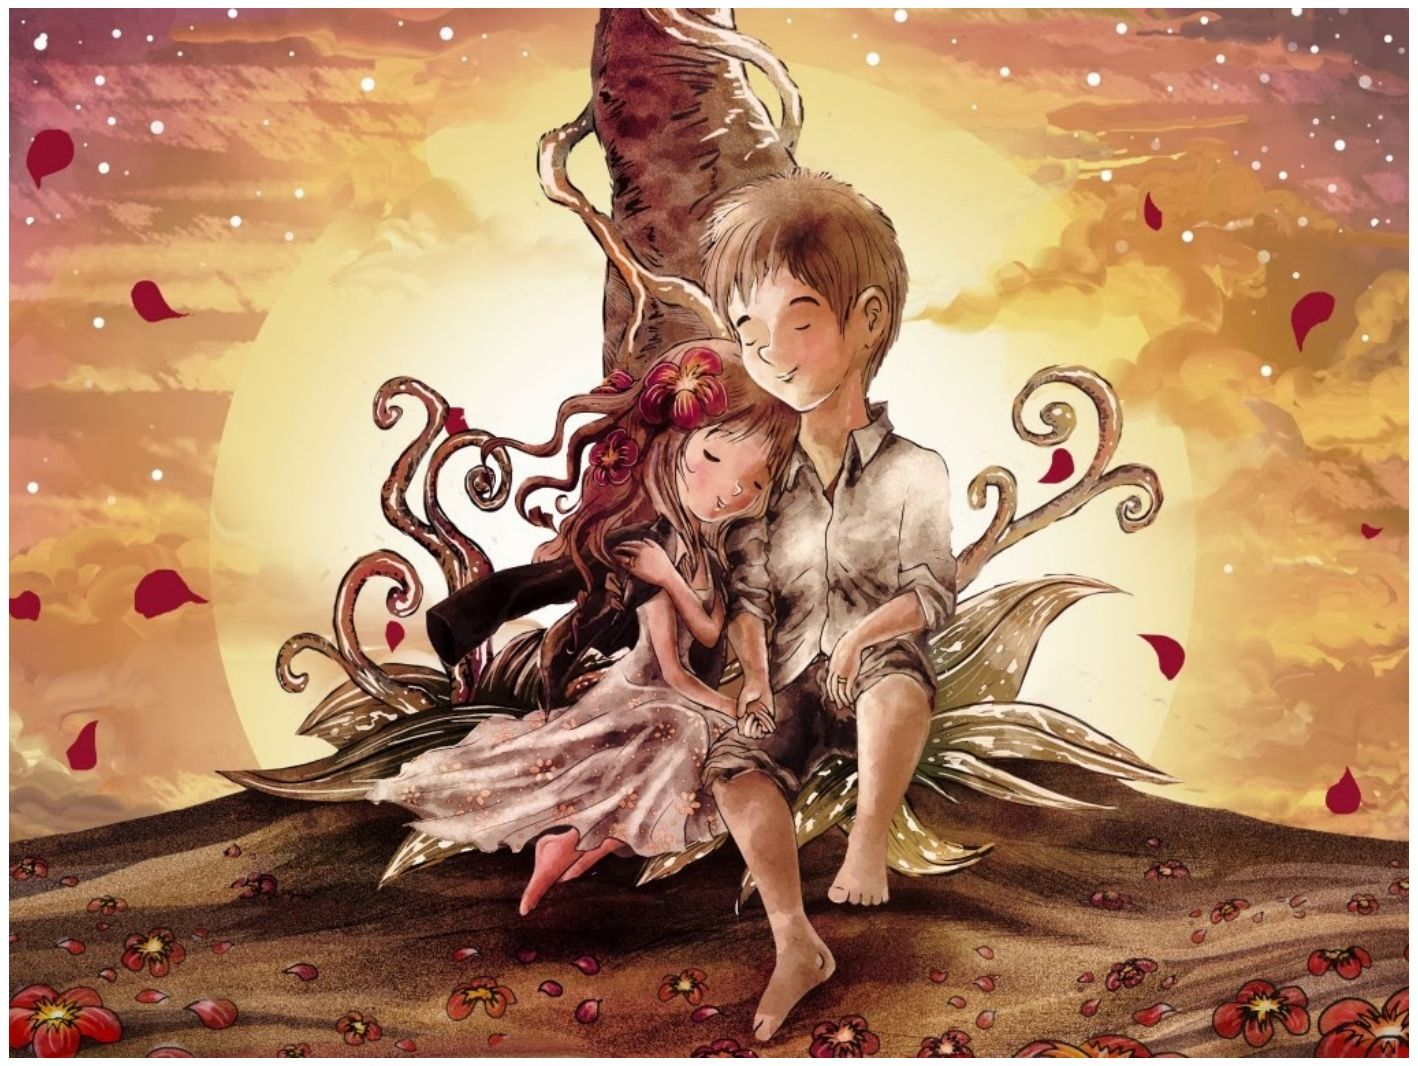 stylish fantasy hd wallpapers free download | wallpapers | pinterest